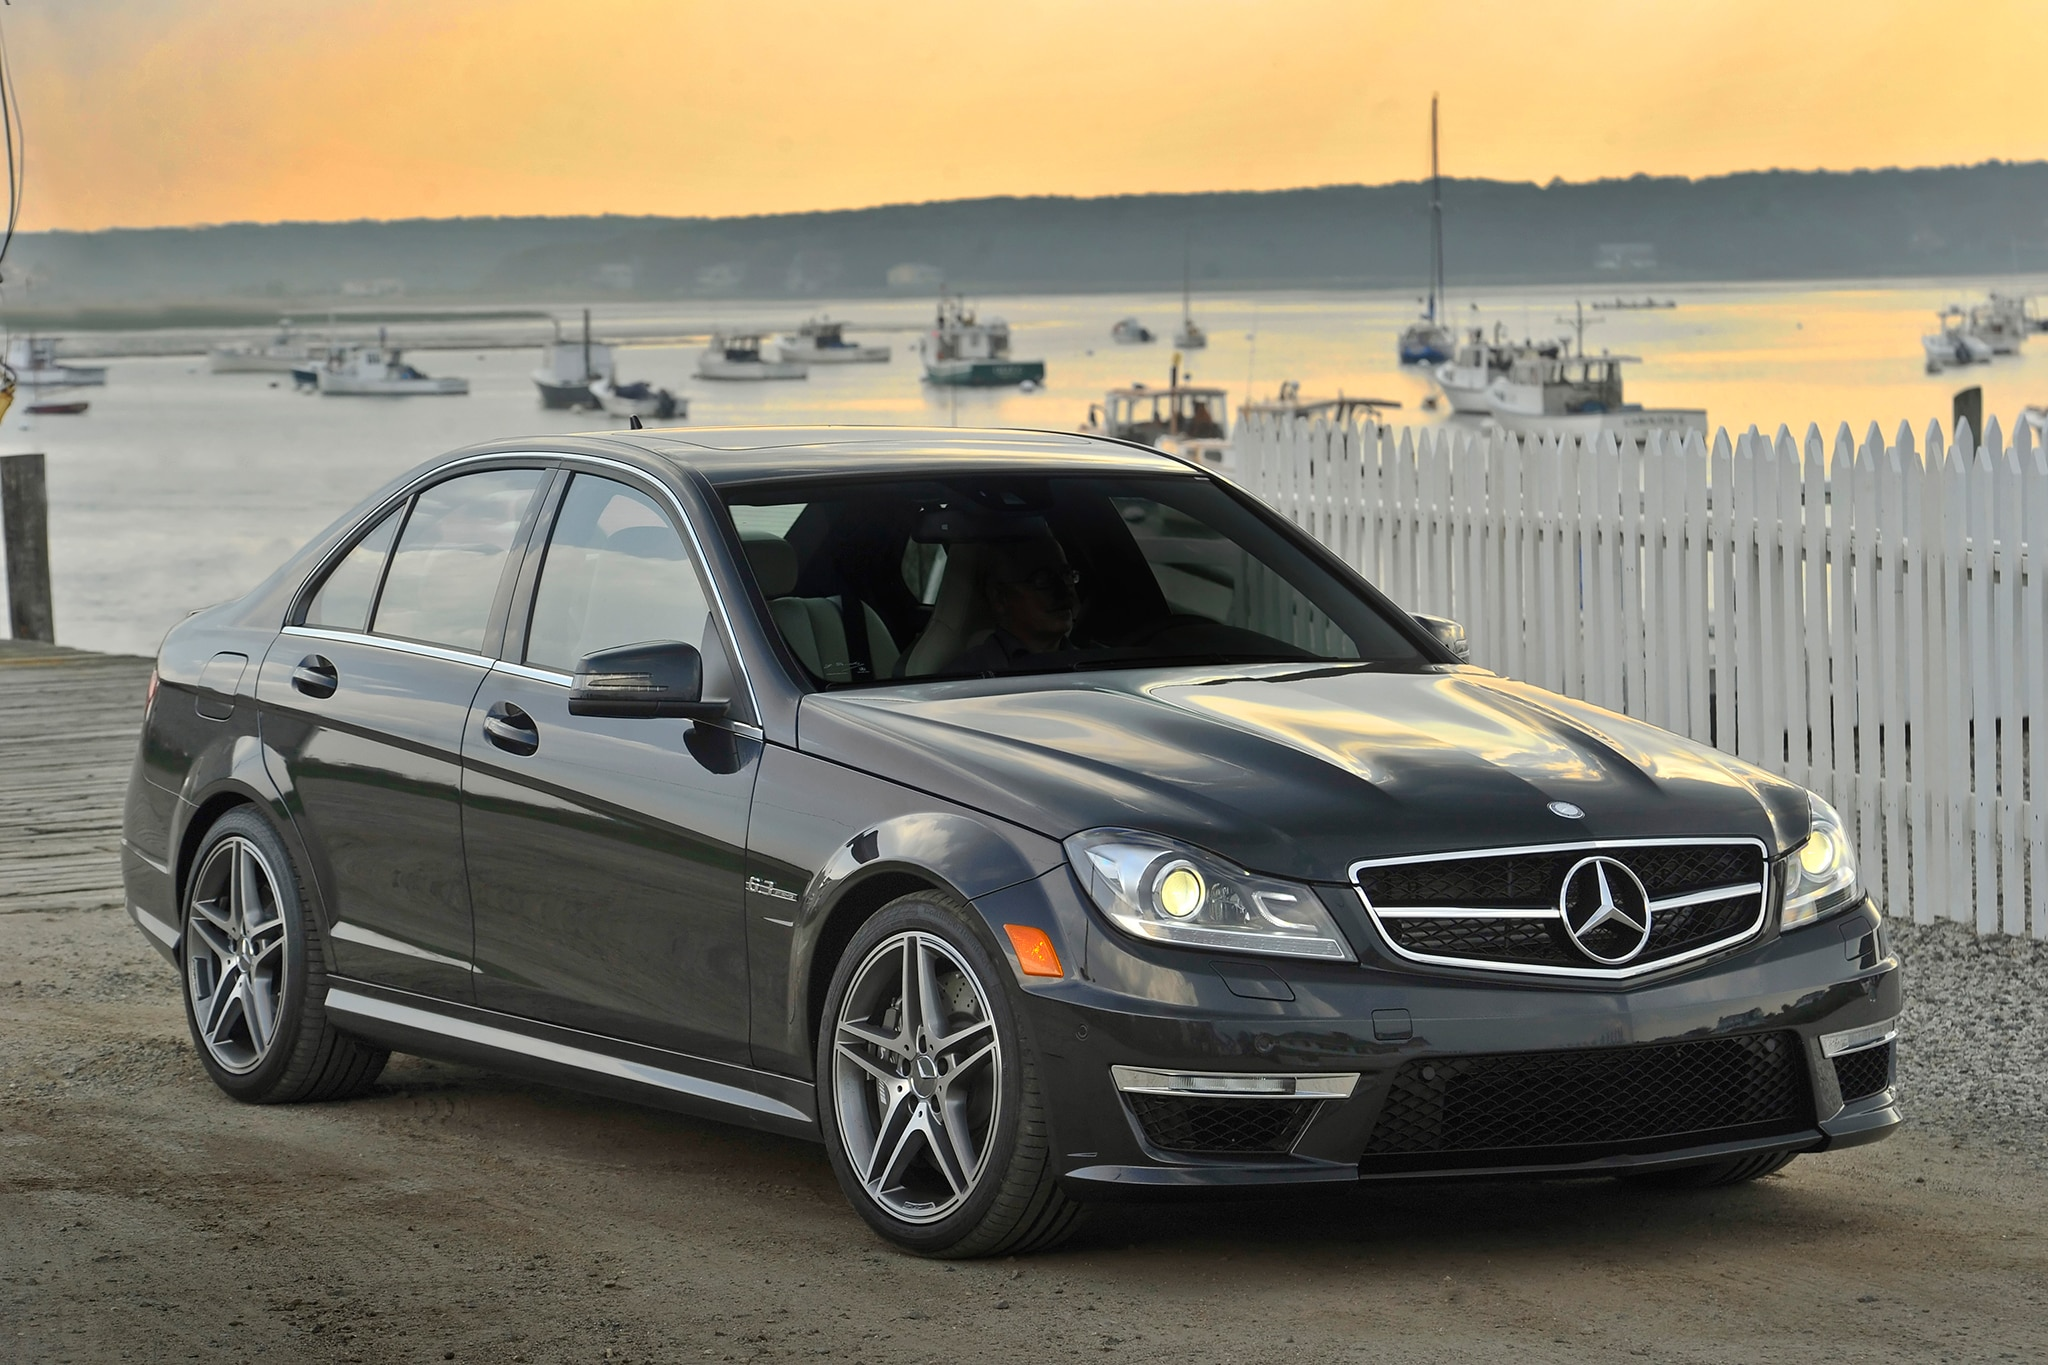 Mercedes benz reveals new 2013 c class sport package with for Mercedes benz c300 rims